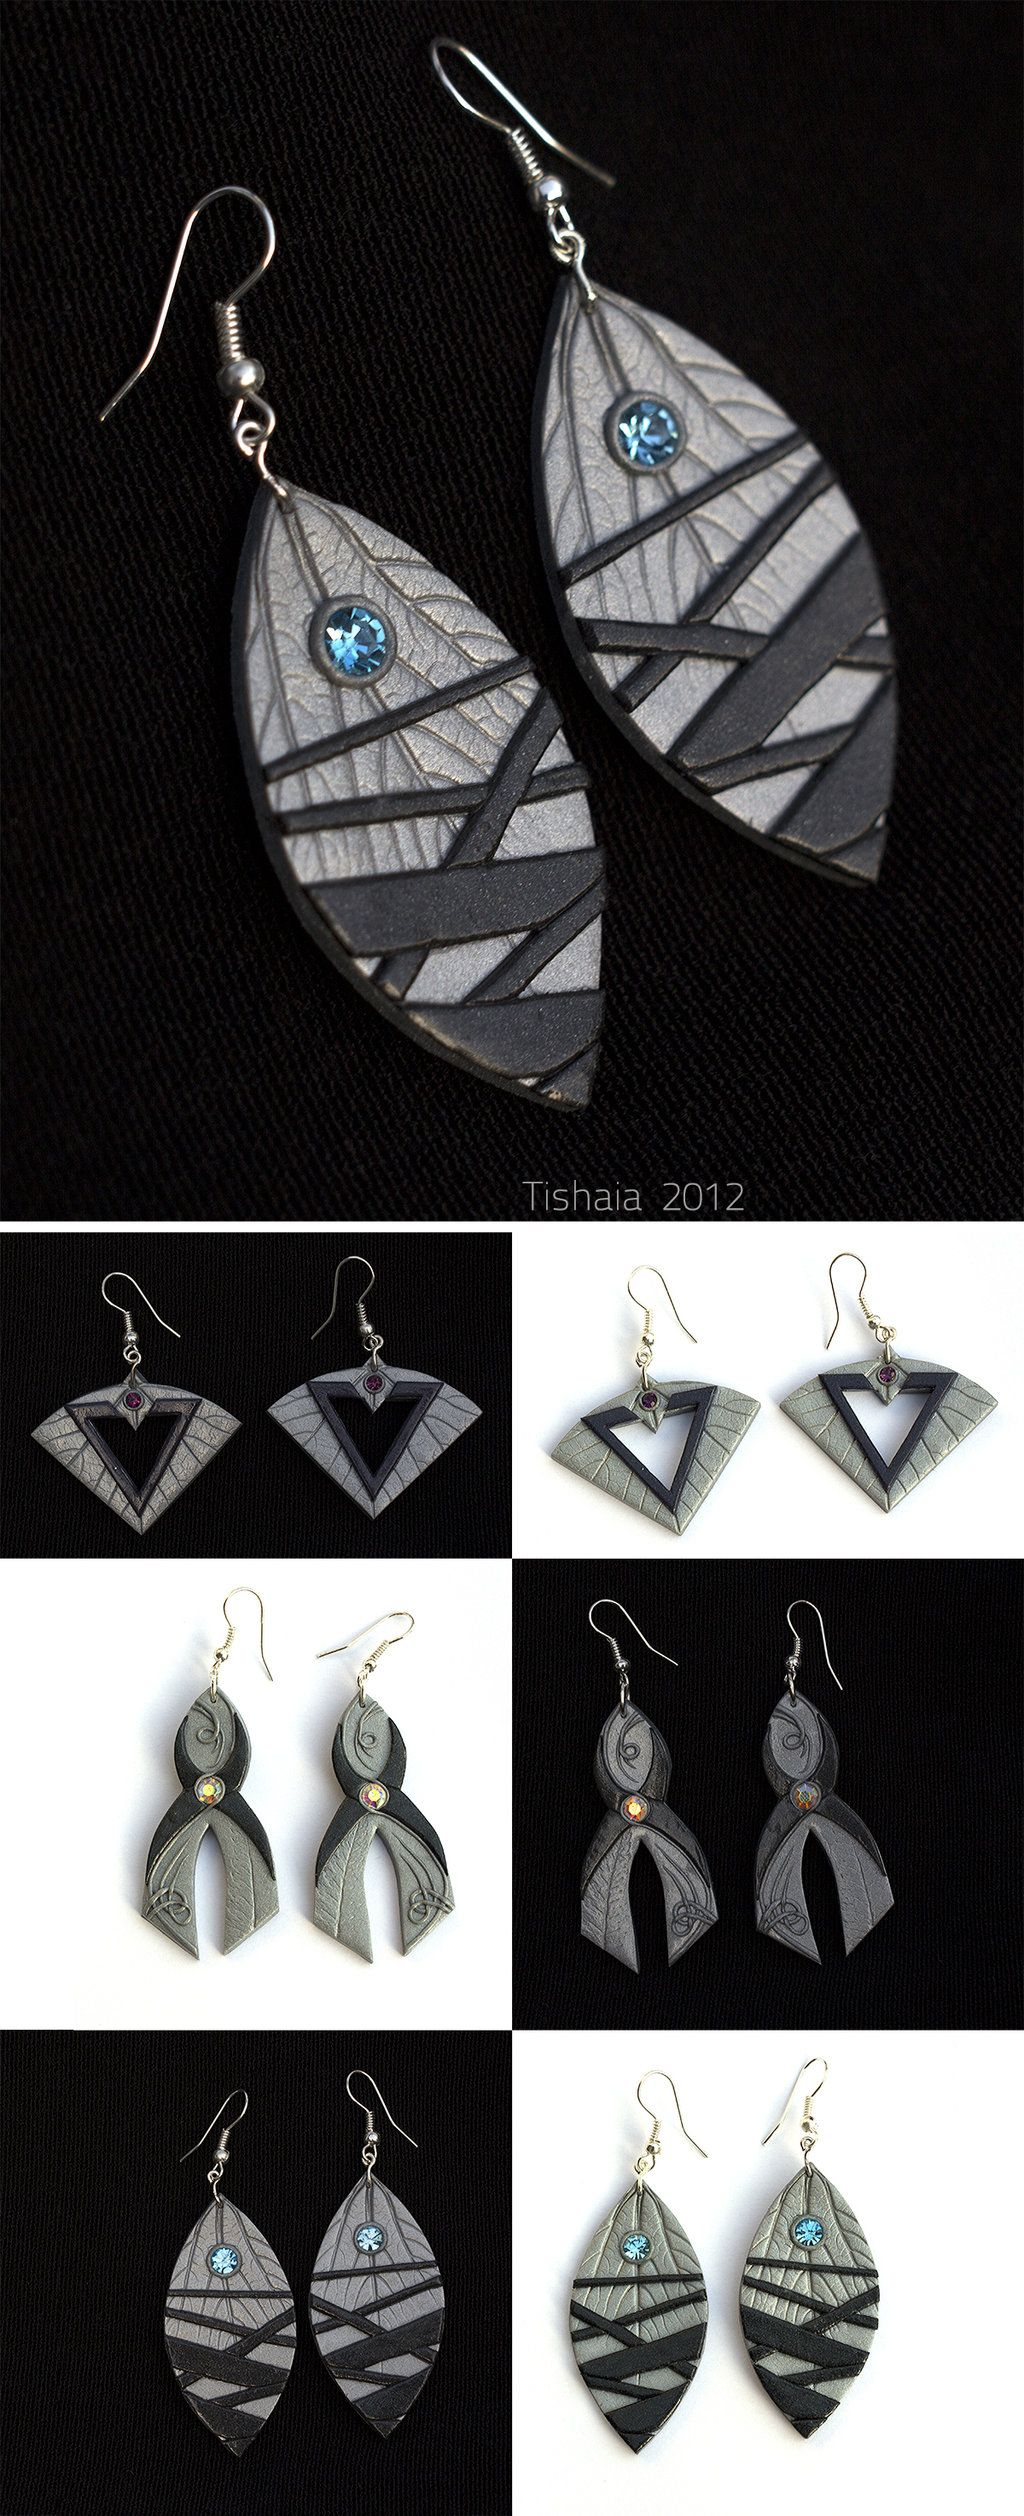 Polymer Clay Earrings -- I don't particularly care for the shapes of the lower pairs. And on the large/top pair, I don't care for the stripes. But I do like the effect of using leaf veining on a color other than green.